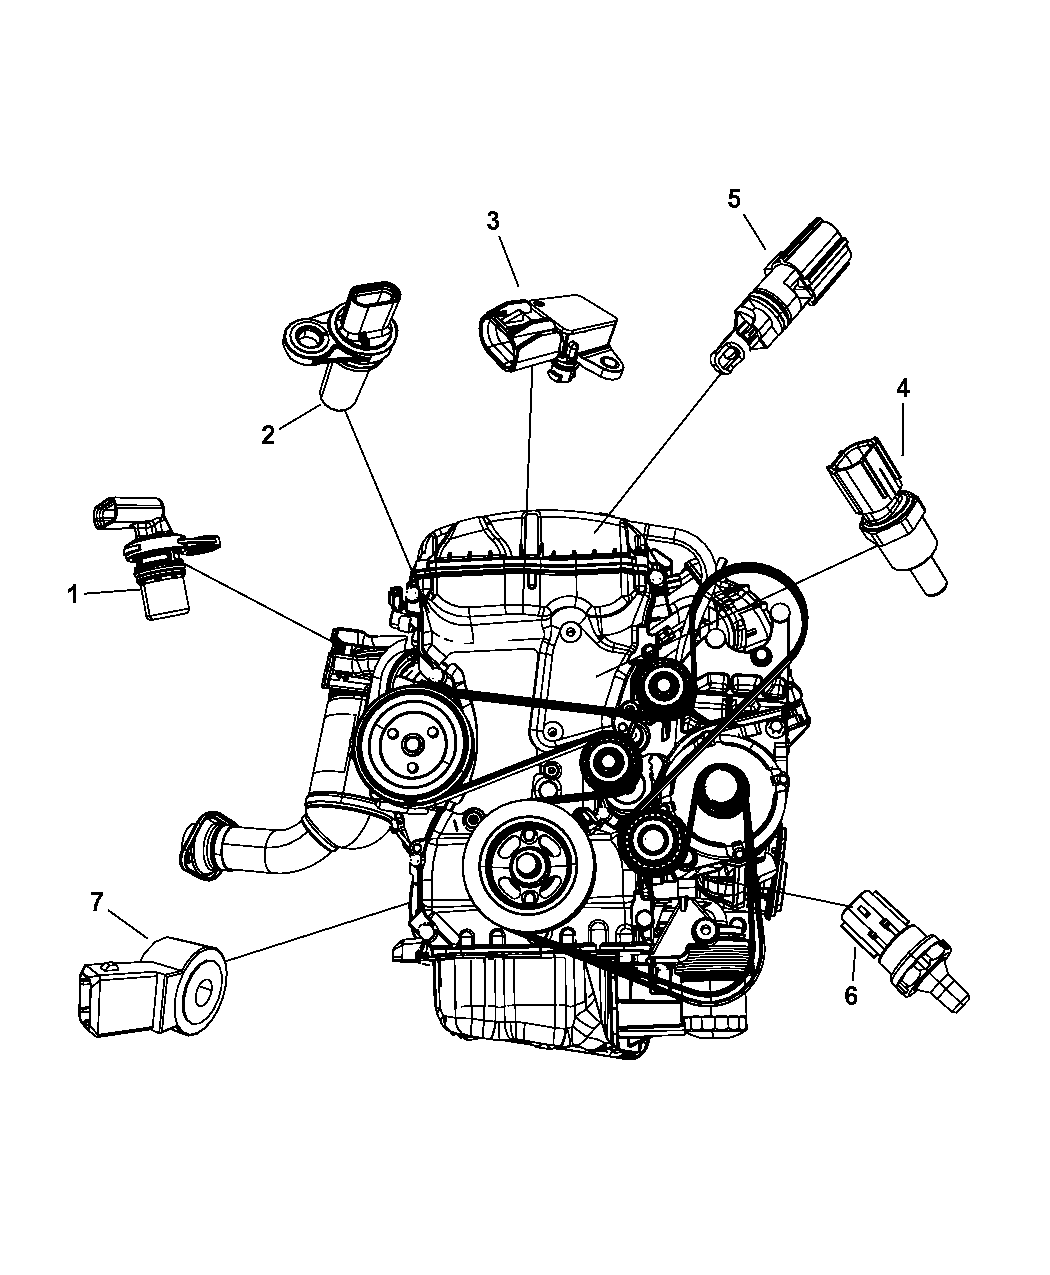 roger vivi ersaks: 2008 Dodge Avenger Engine Diagram